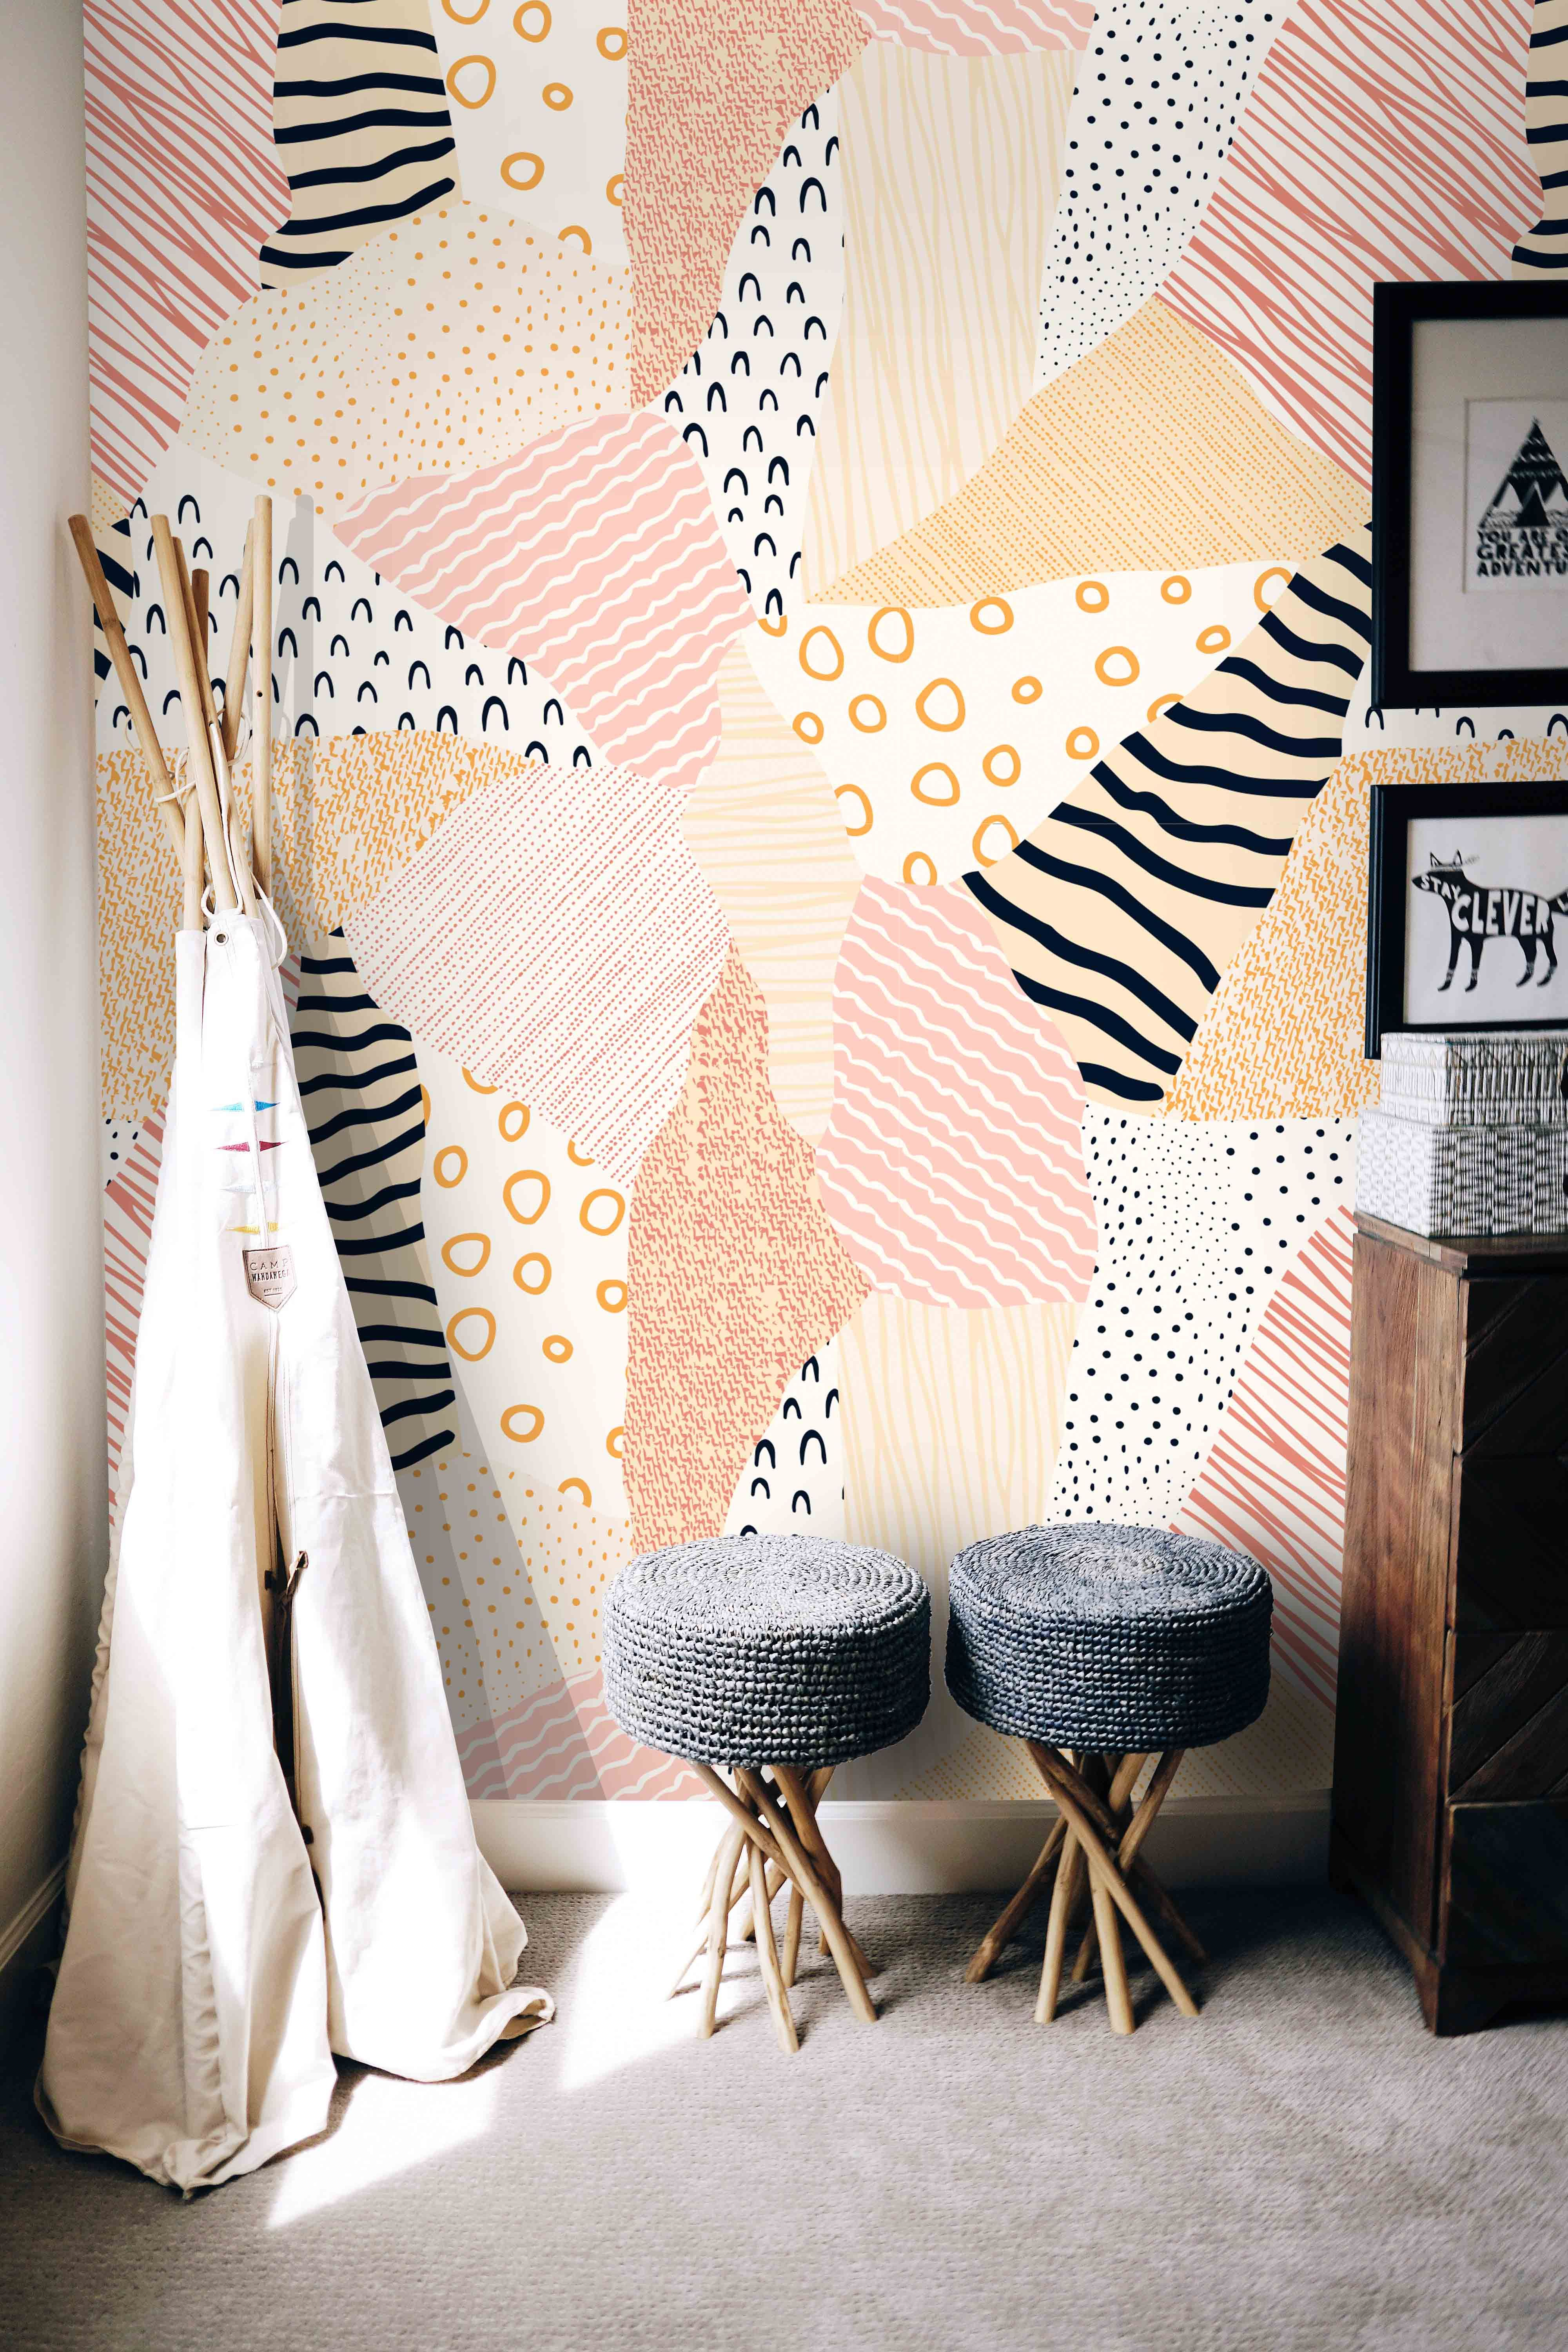 Cute Wall Murals For Home Home Interior Decor Ideas Wallpapers By Green Planet Print House Interior Home Interior Decorating